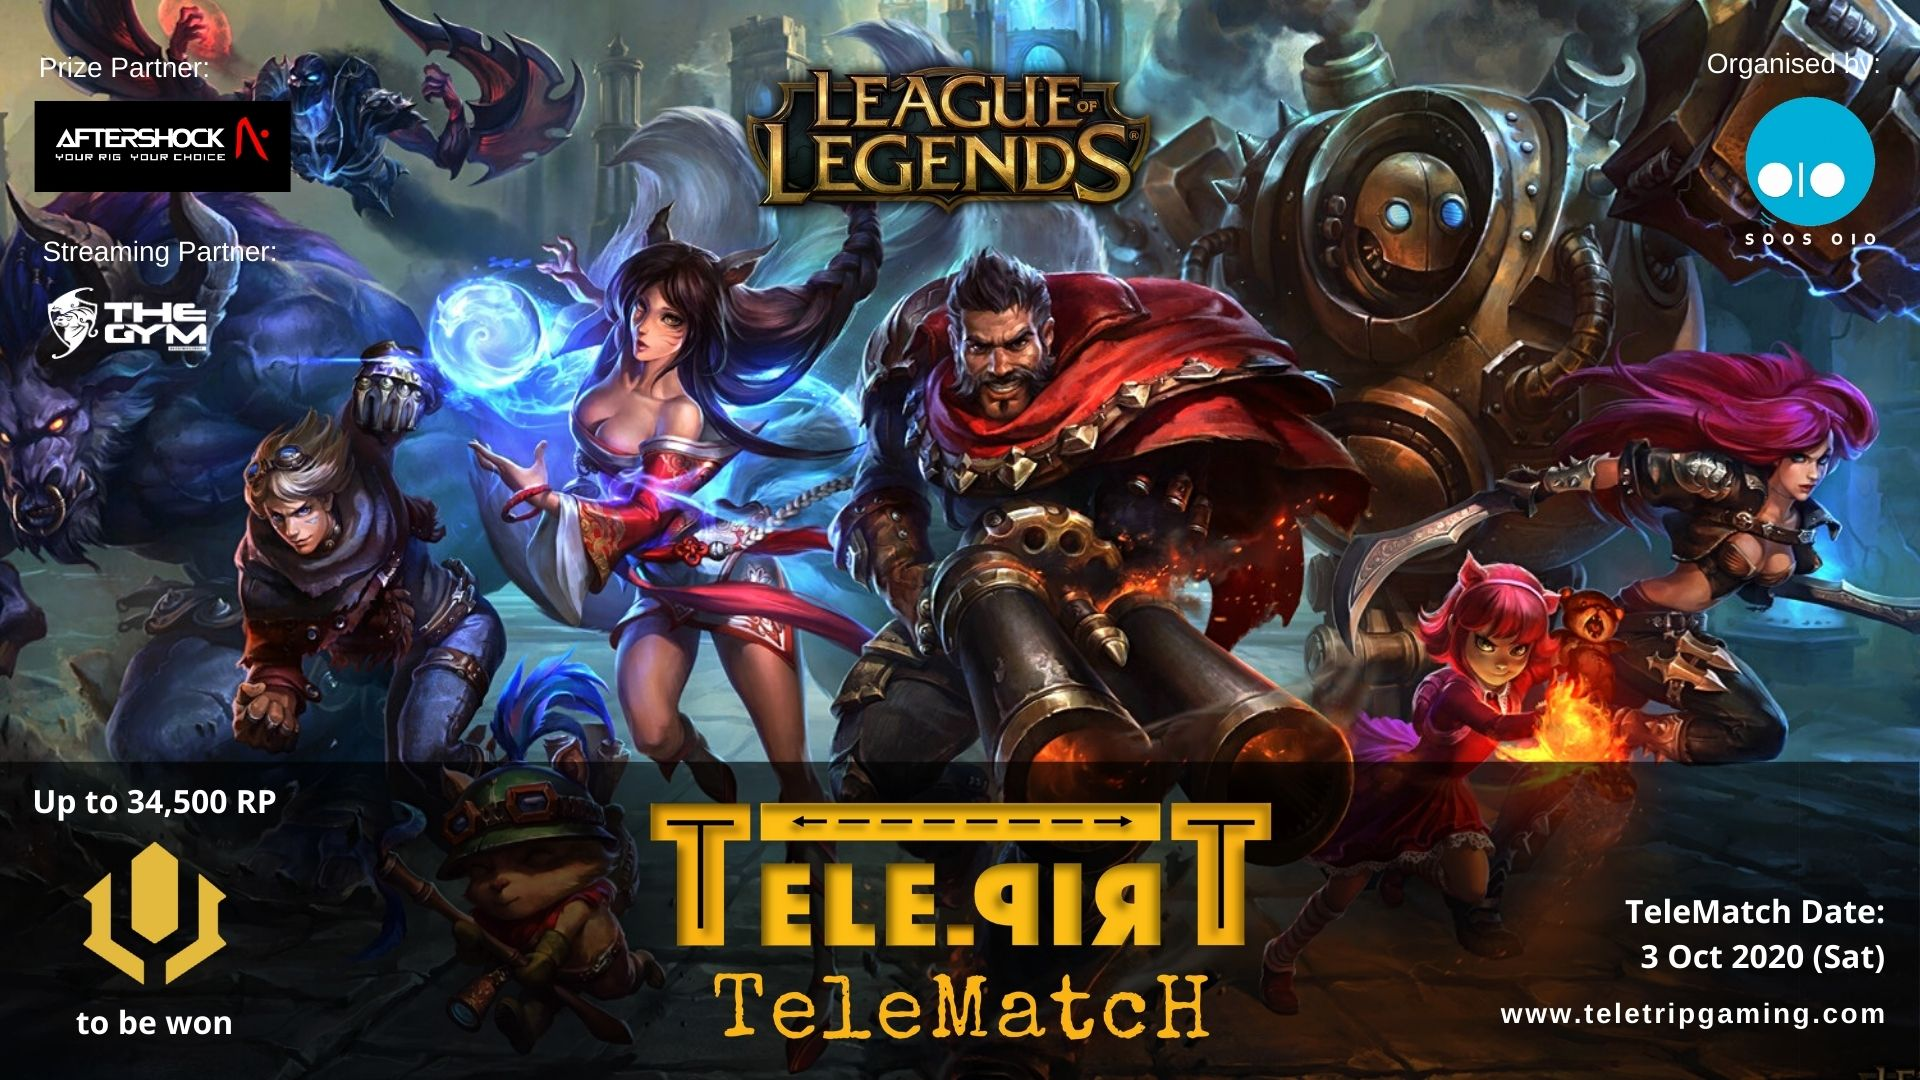 TeleMatch League of Legends - 3 Oct 2020